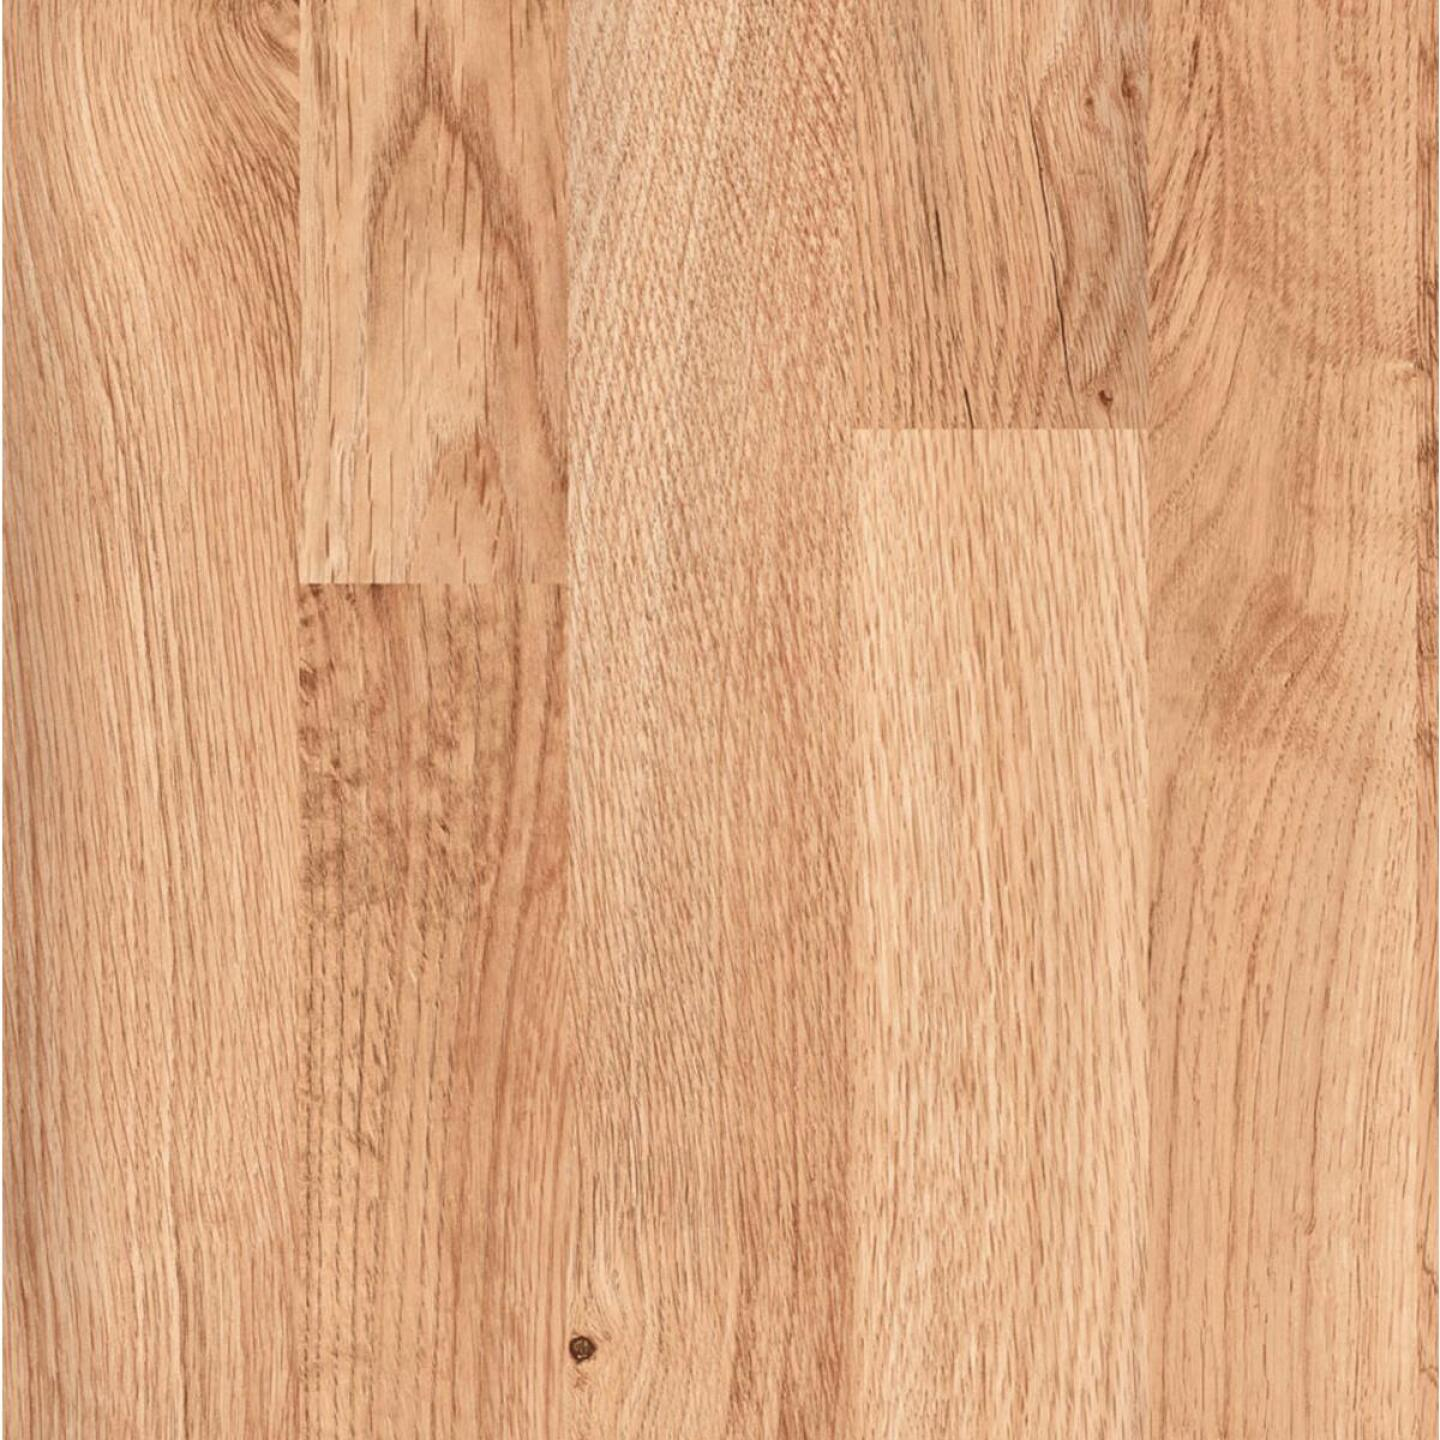 Balterio Right Step Vitality Harvest Oak 7.44 In. W x 49.64 In. L Laminate Flooring (25.64 Sq. Ft./Case) Image 1